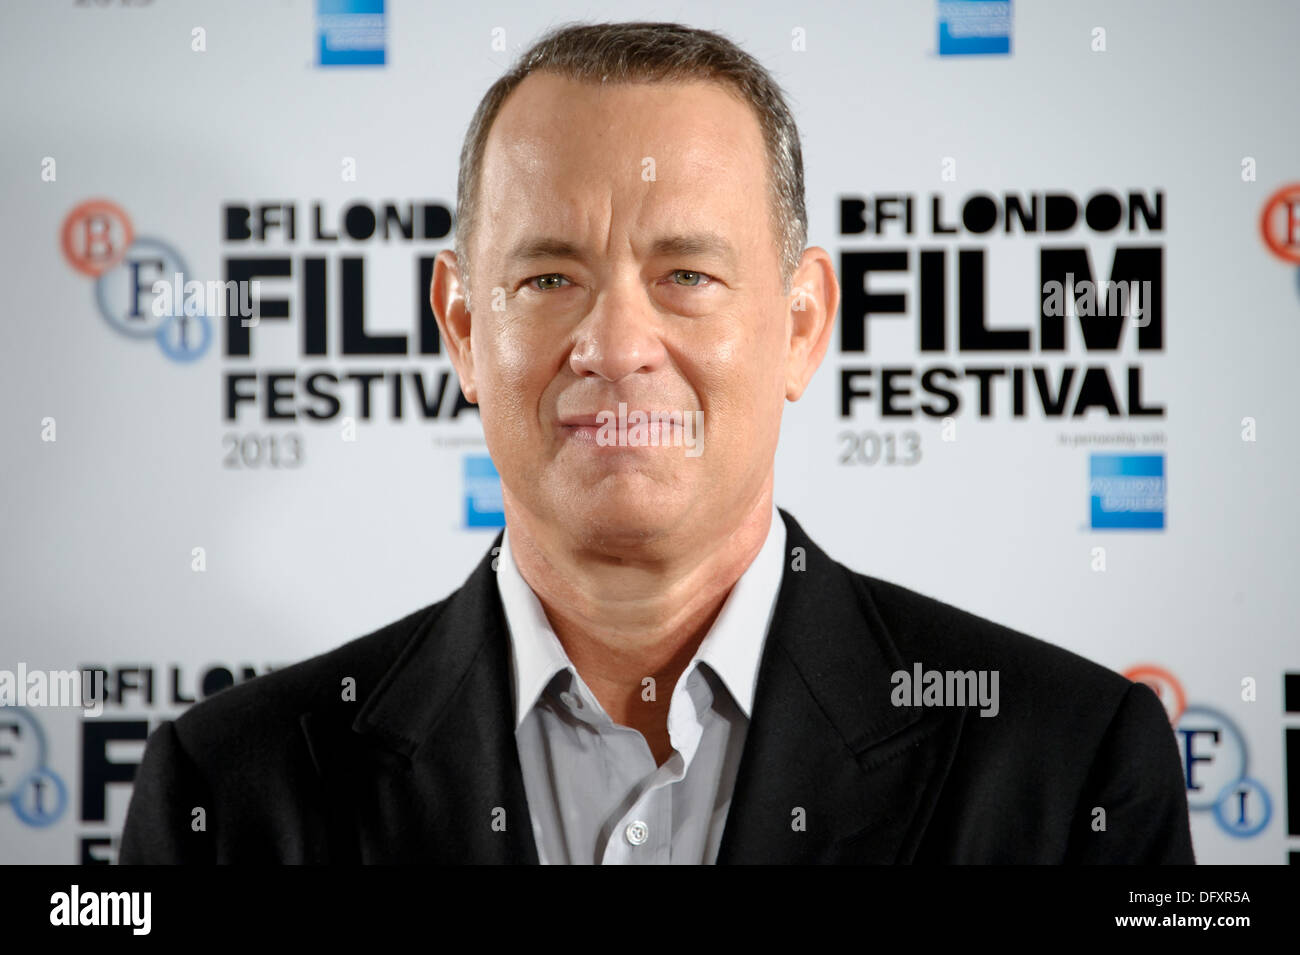 U.S actor Tom Hanks arrives for the BFI London Film Festival Captain Phillips Photocall at a central London cinema. - Stock Image